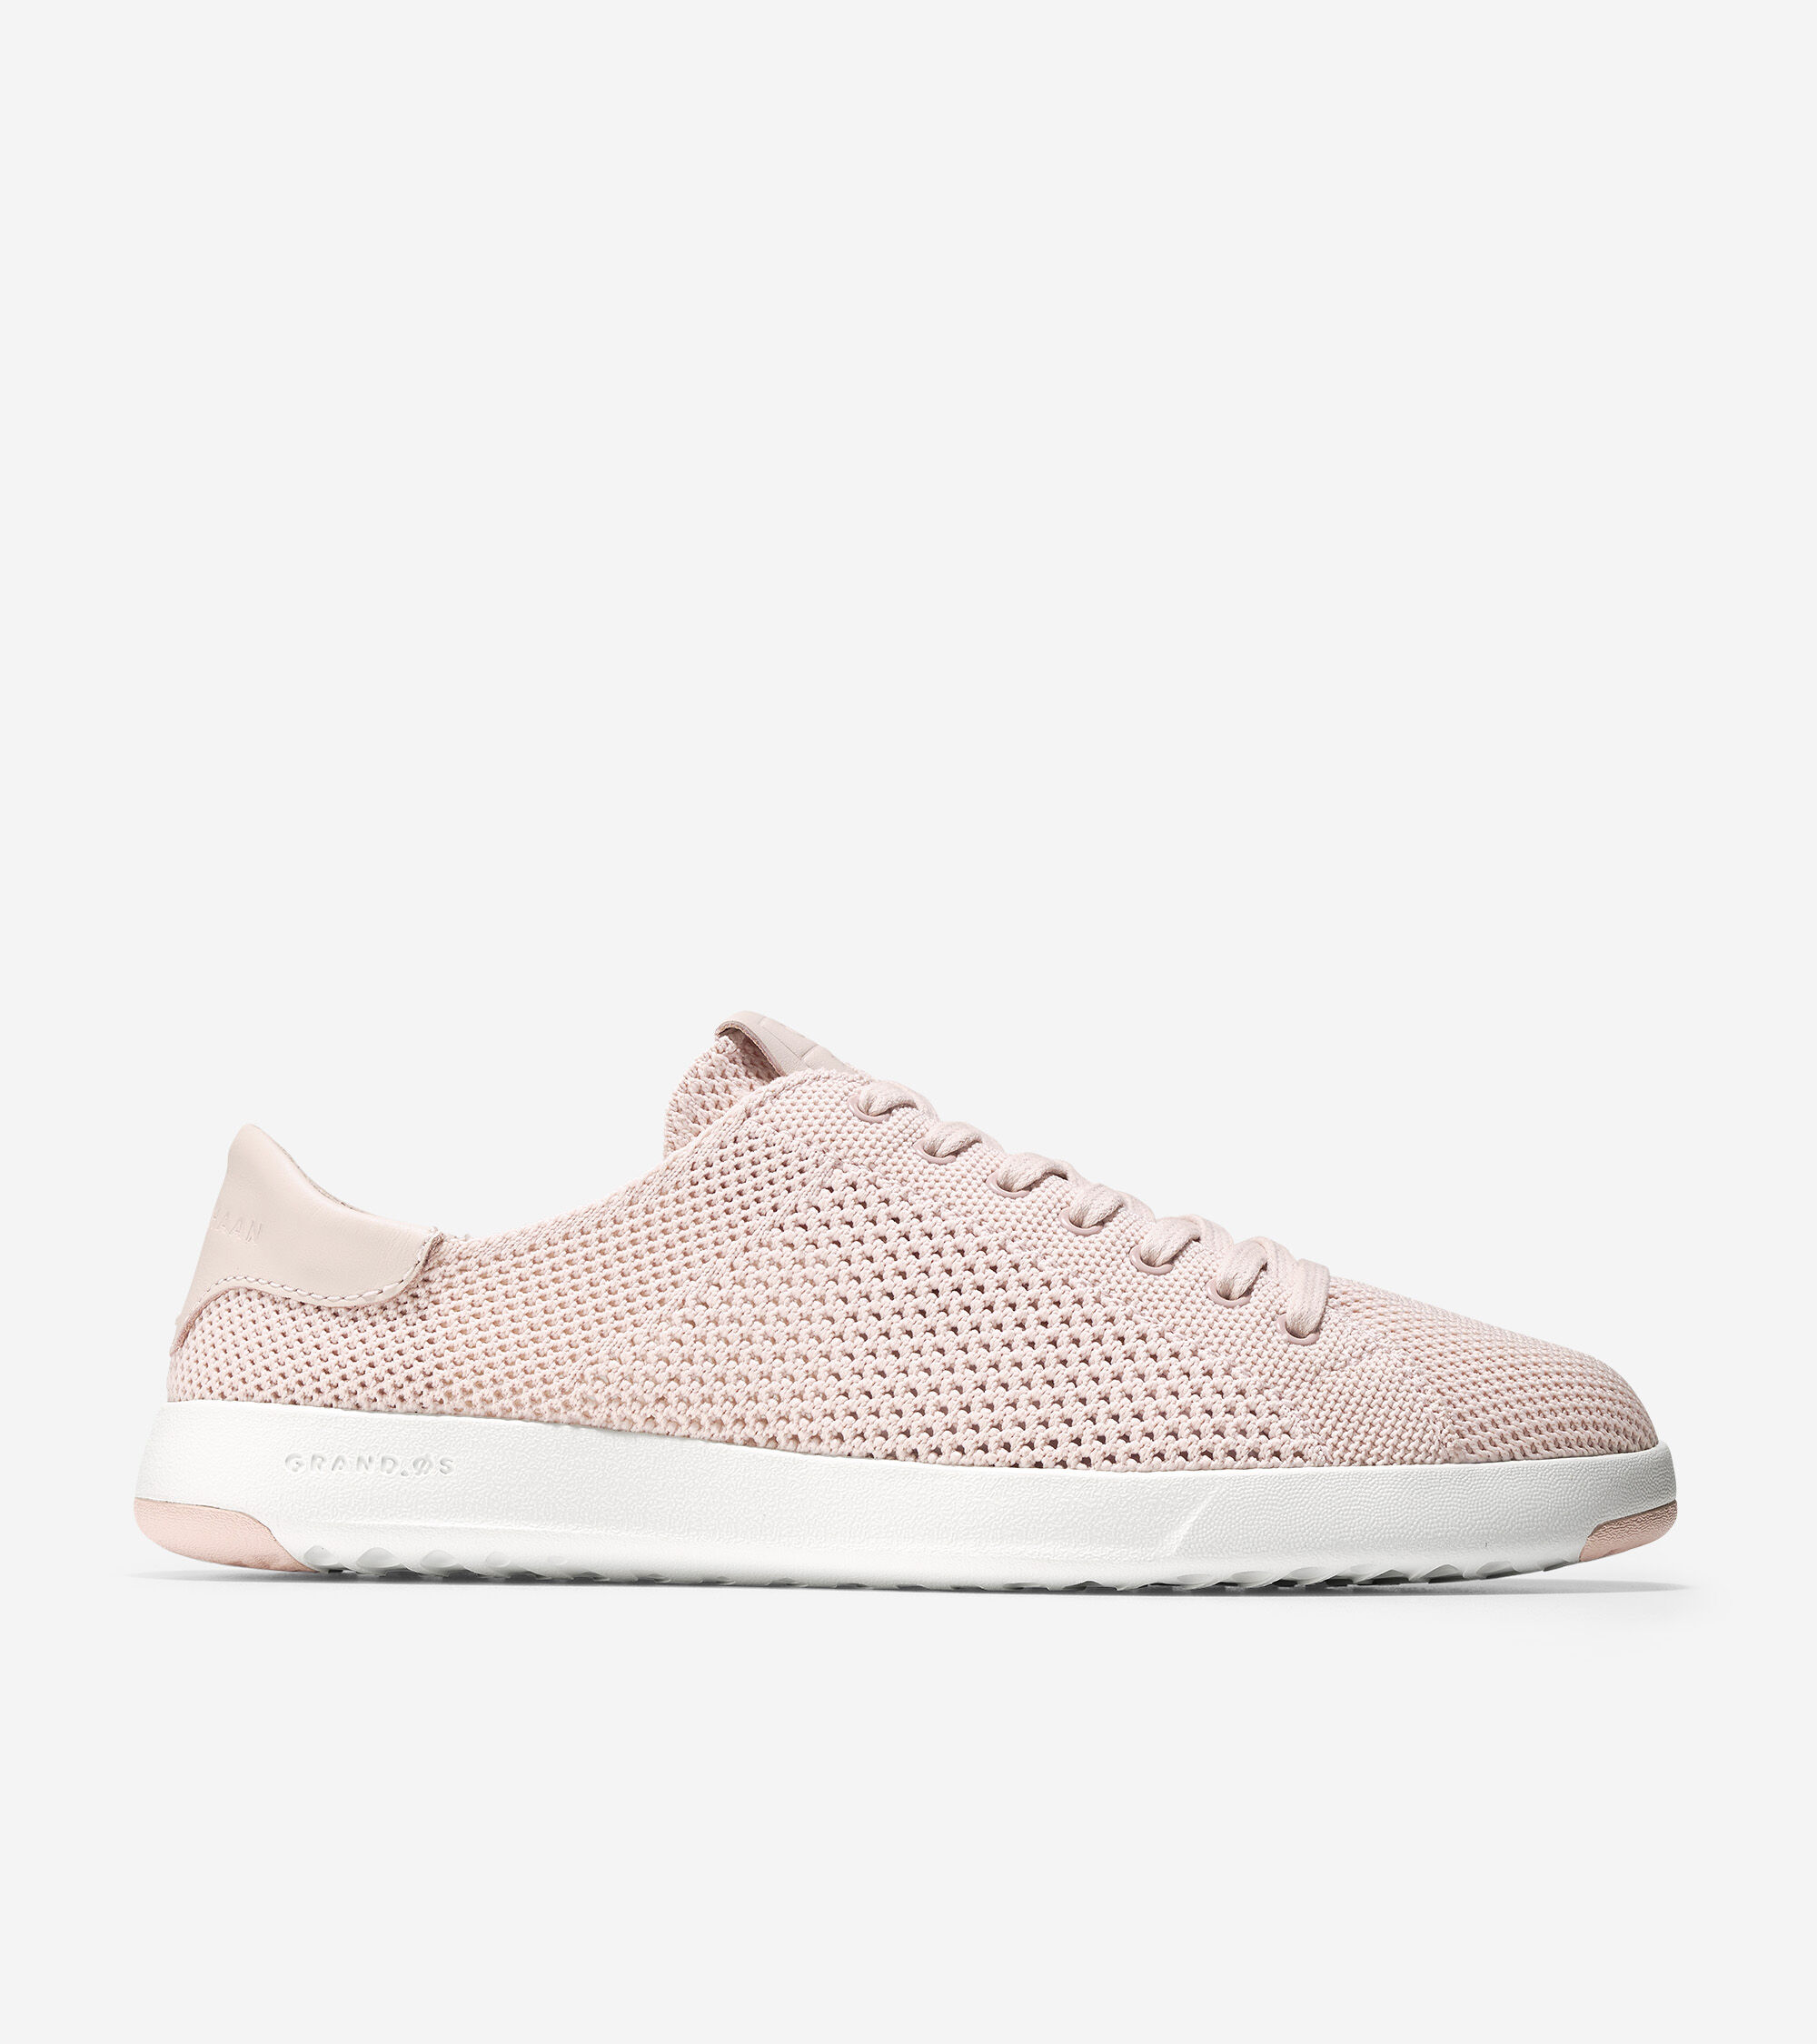 Cole Haan Grandpro Stitchlite Sneakers X2rl2N